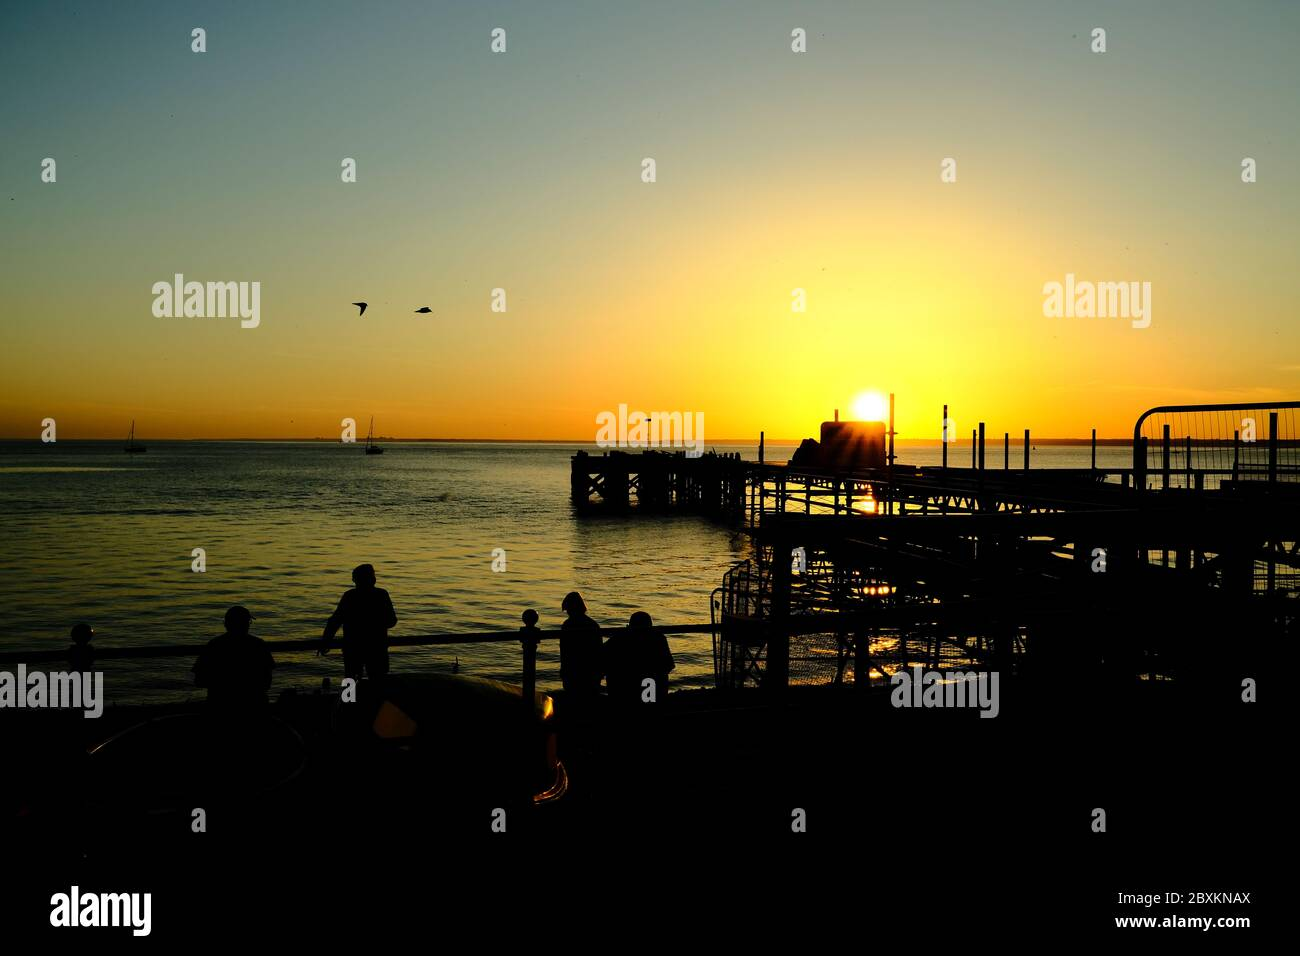 View out across the Solent to the mainland over Totland Pier isle of Wight at sunset yachts kayakers beachgoers in silhouette orange glow of twilight Stock Photo